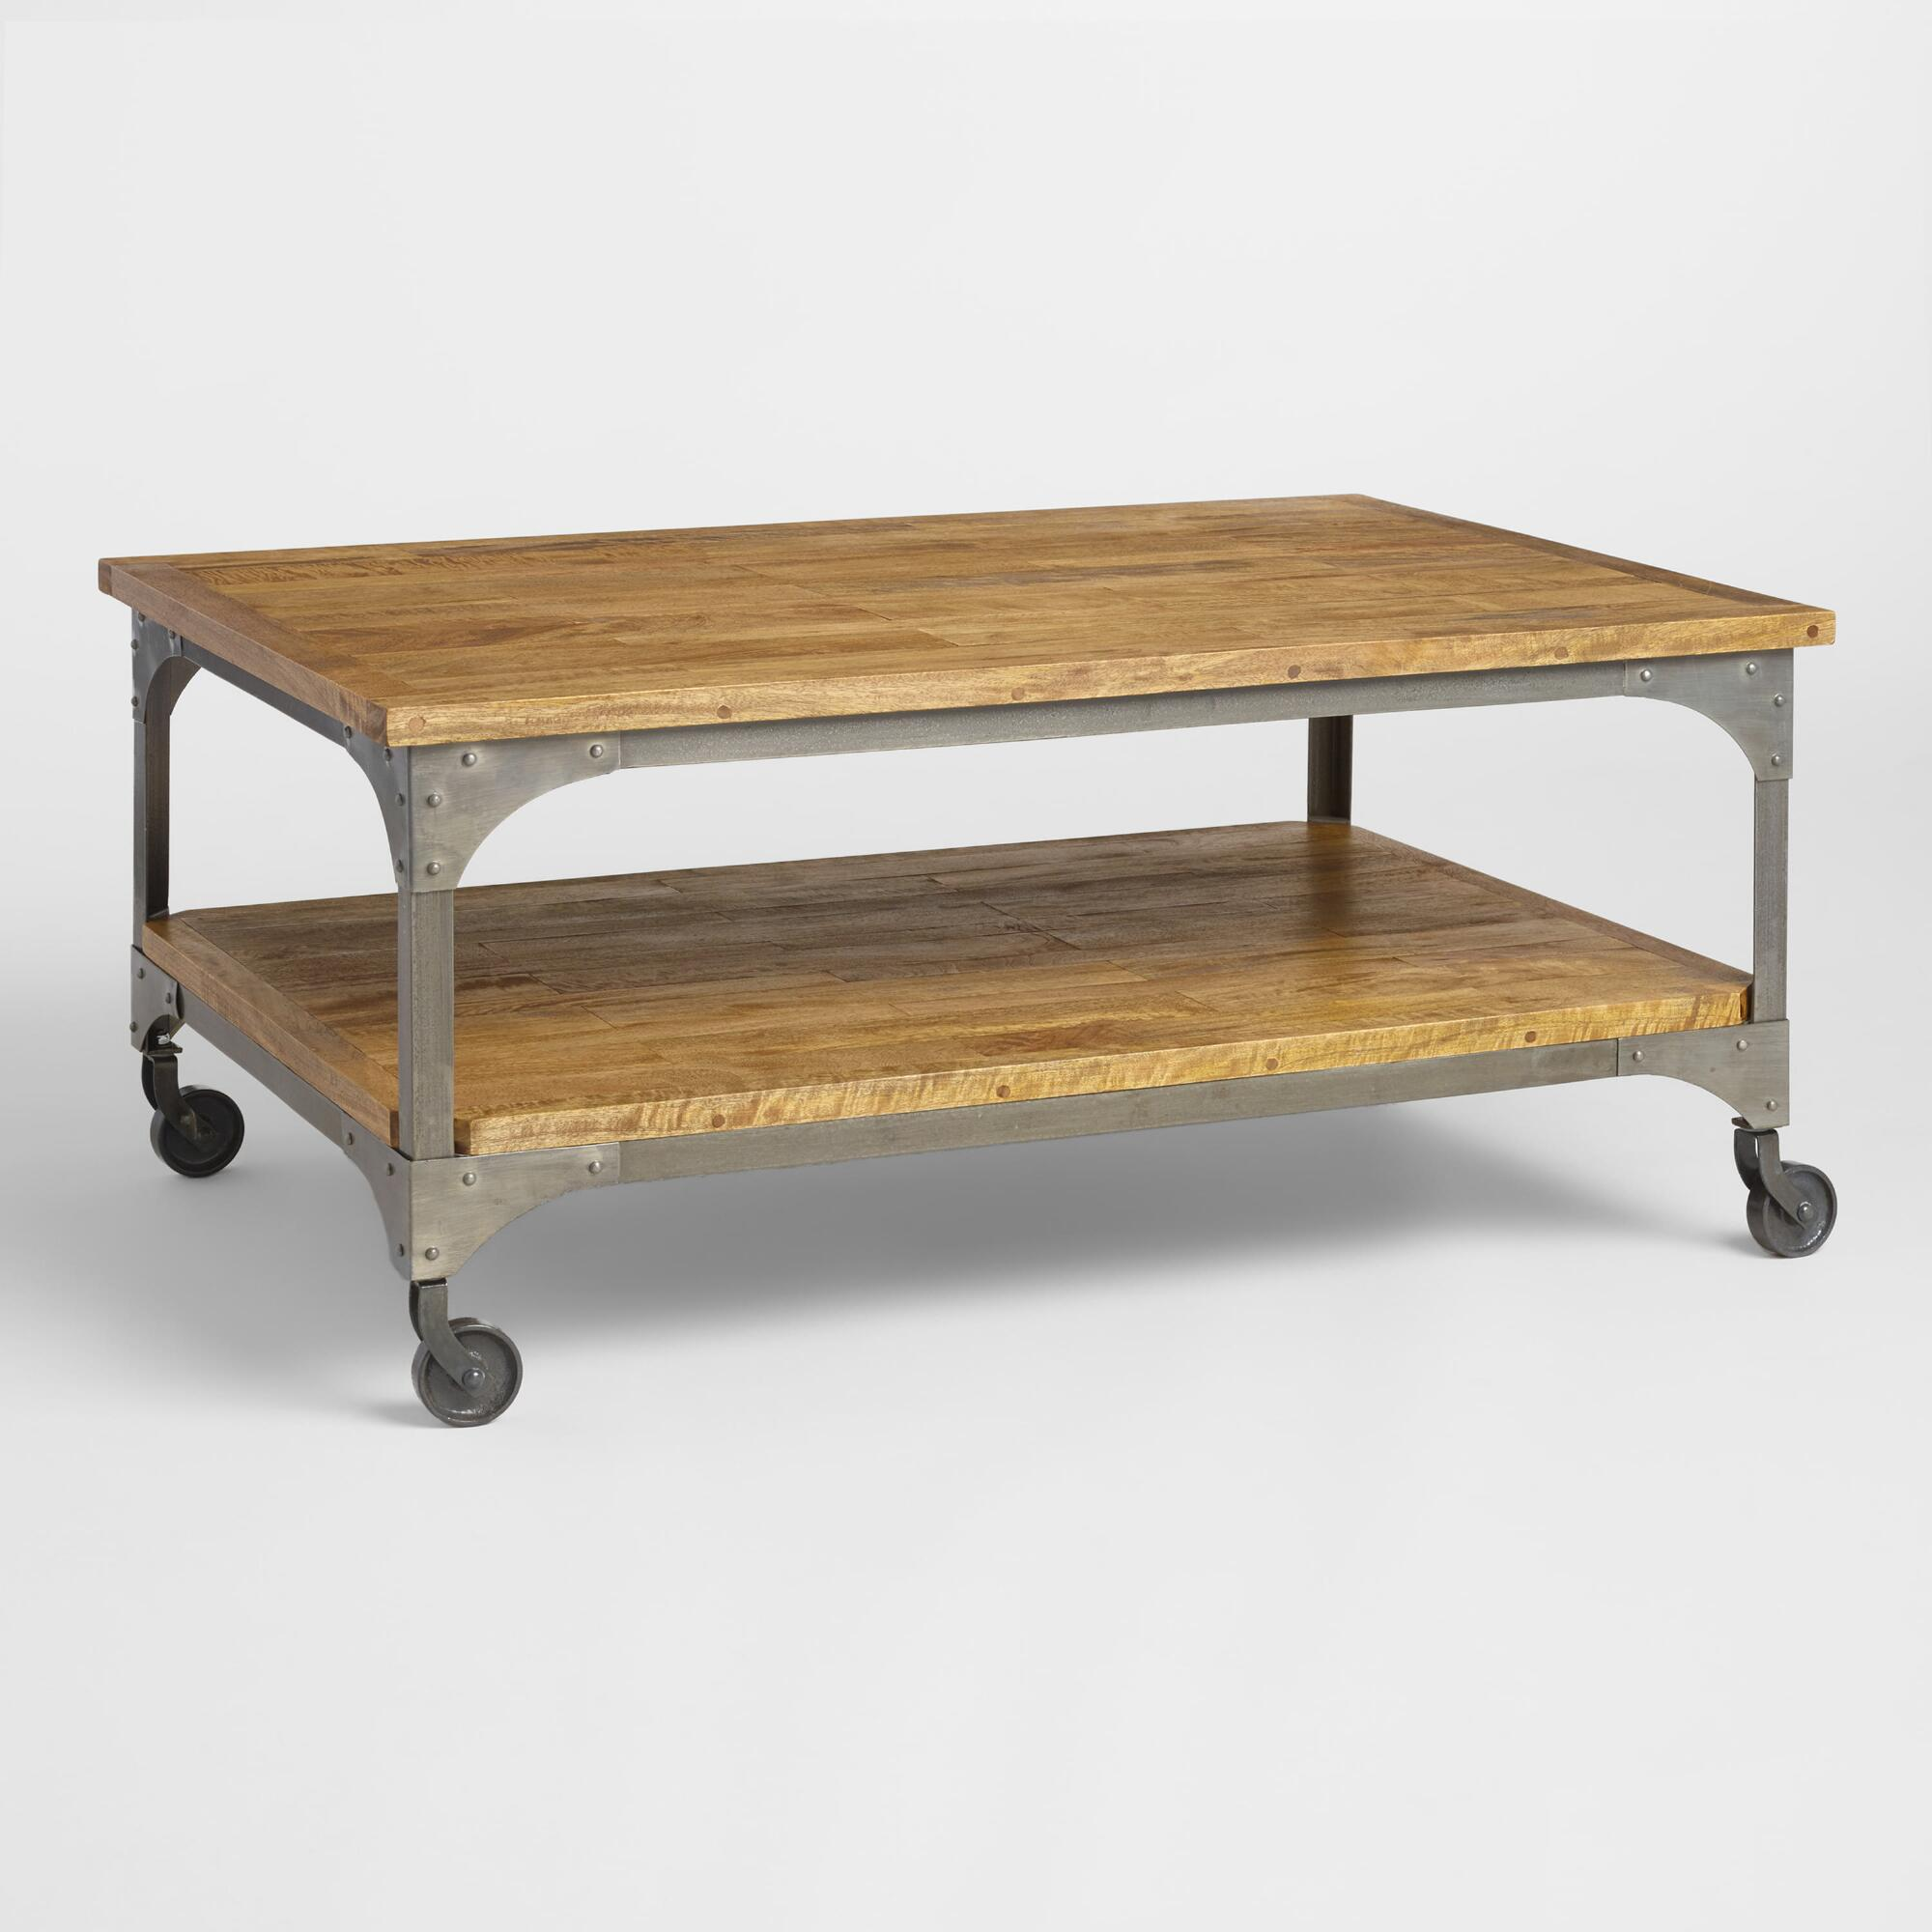 Superb img of Wood and Metal Aiden Coffee Table World Market with #391C12 color and 2000x2000 pixels